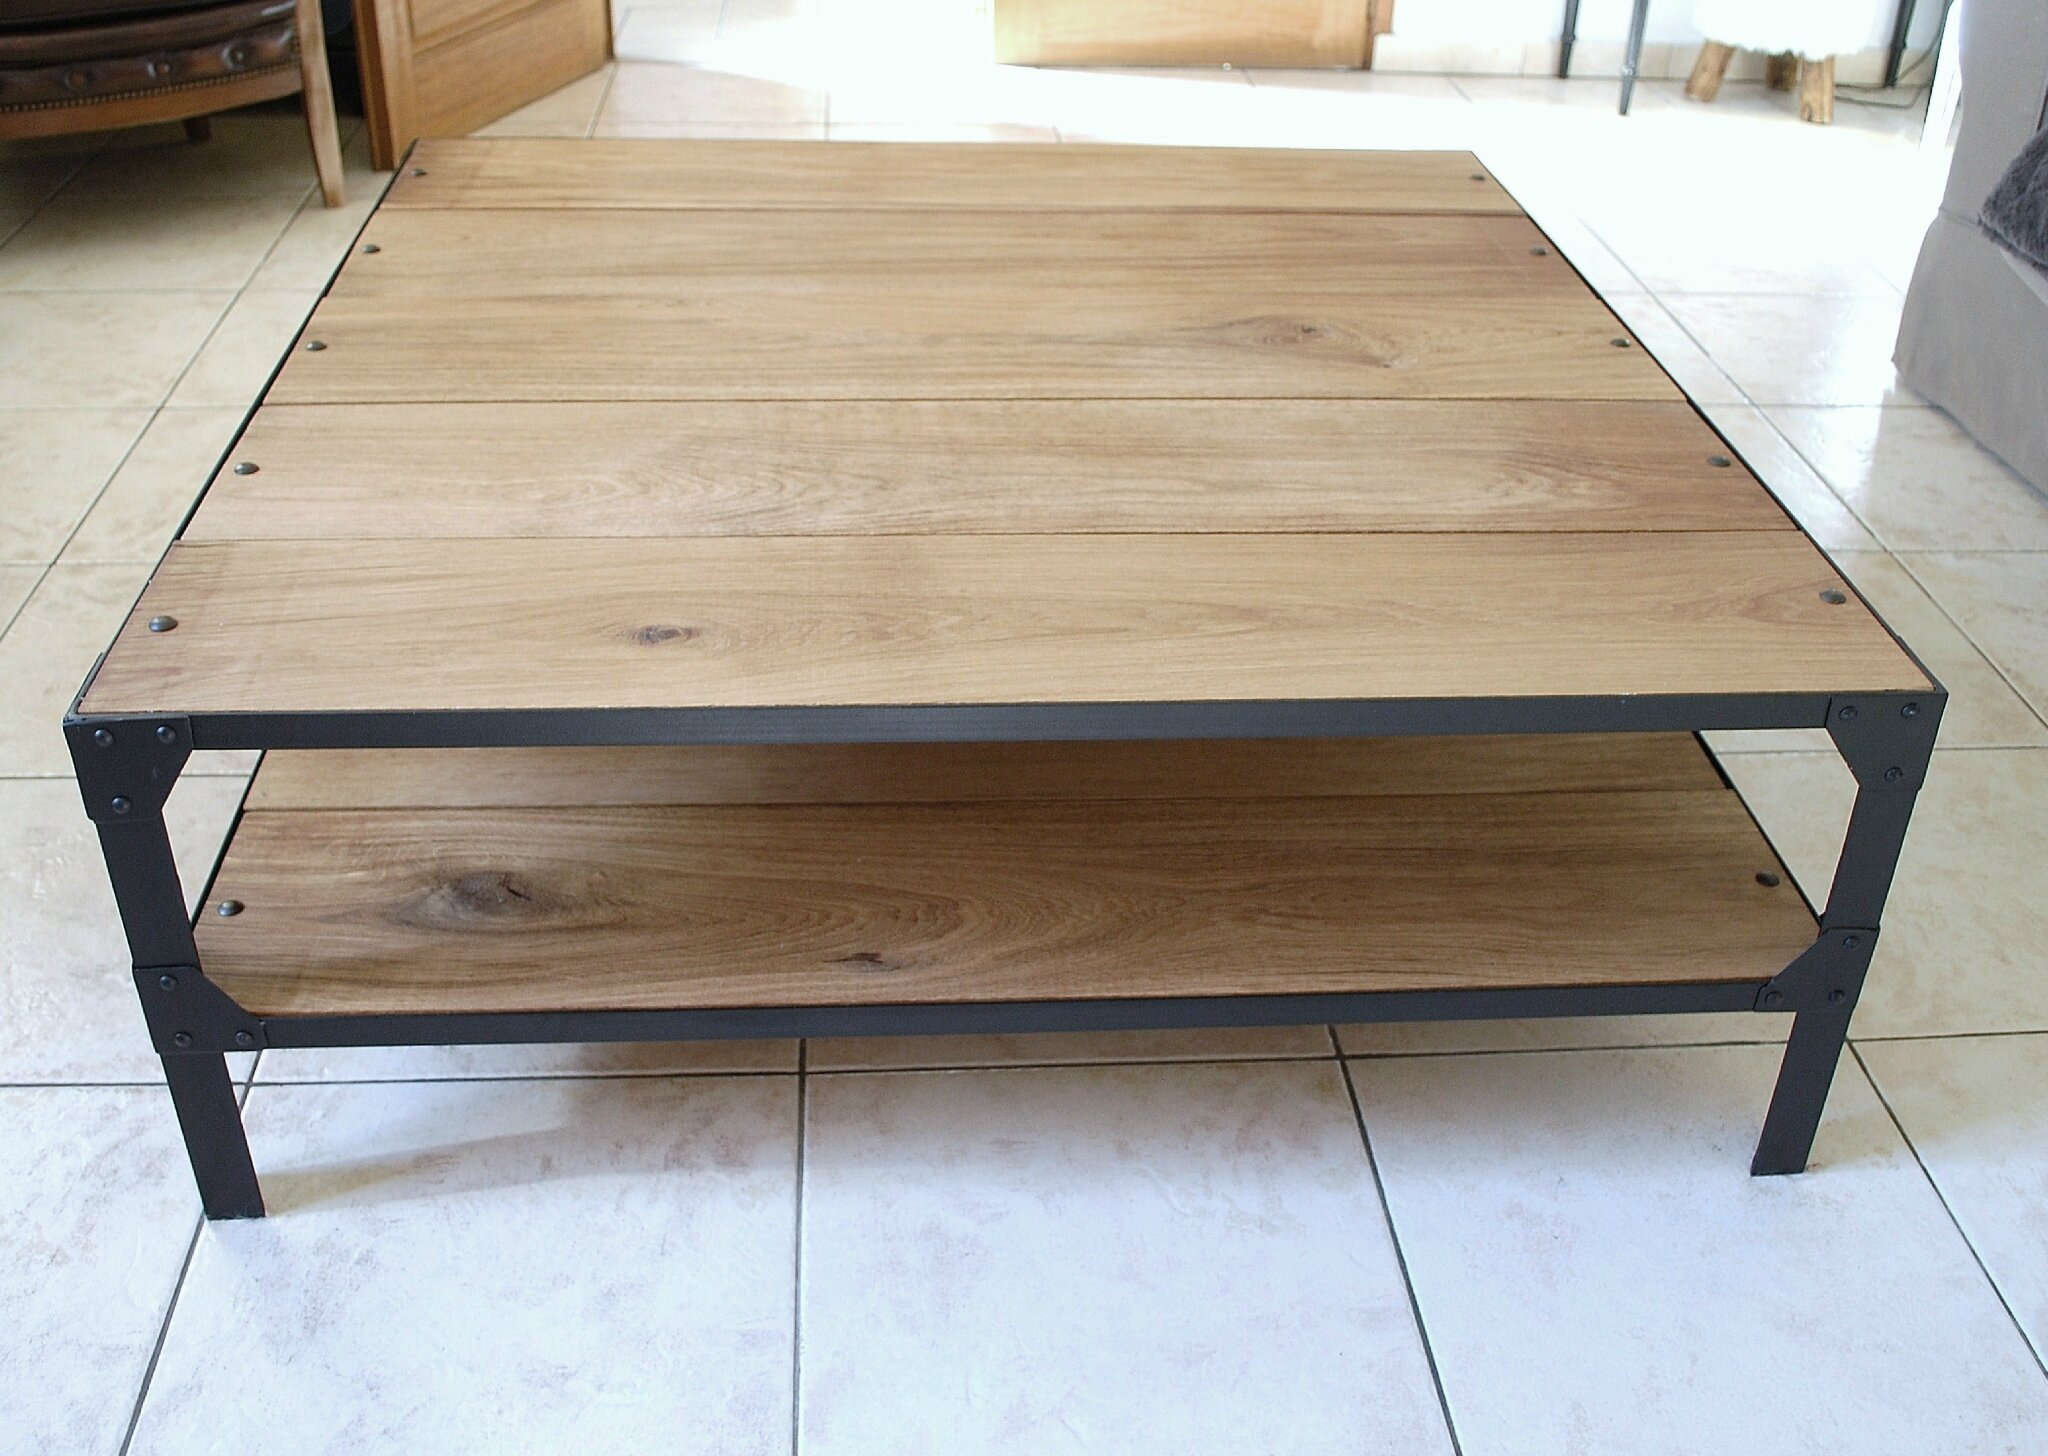 L Atelier Broc Loft # Ensemble Meuble Tv Table Basse